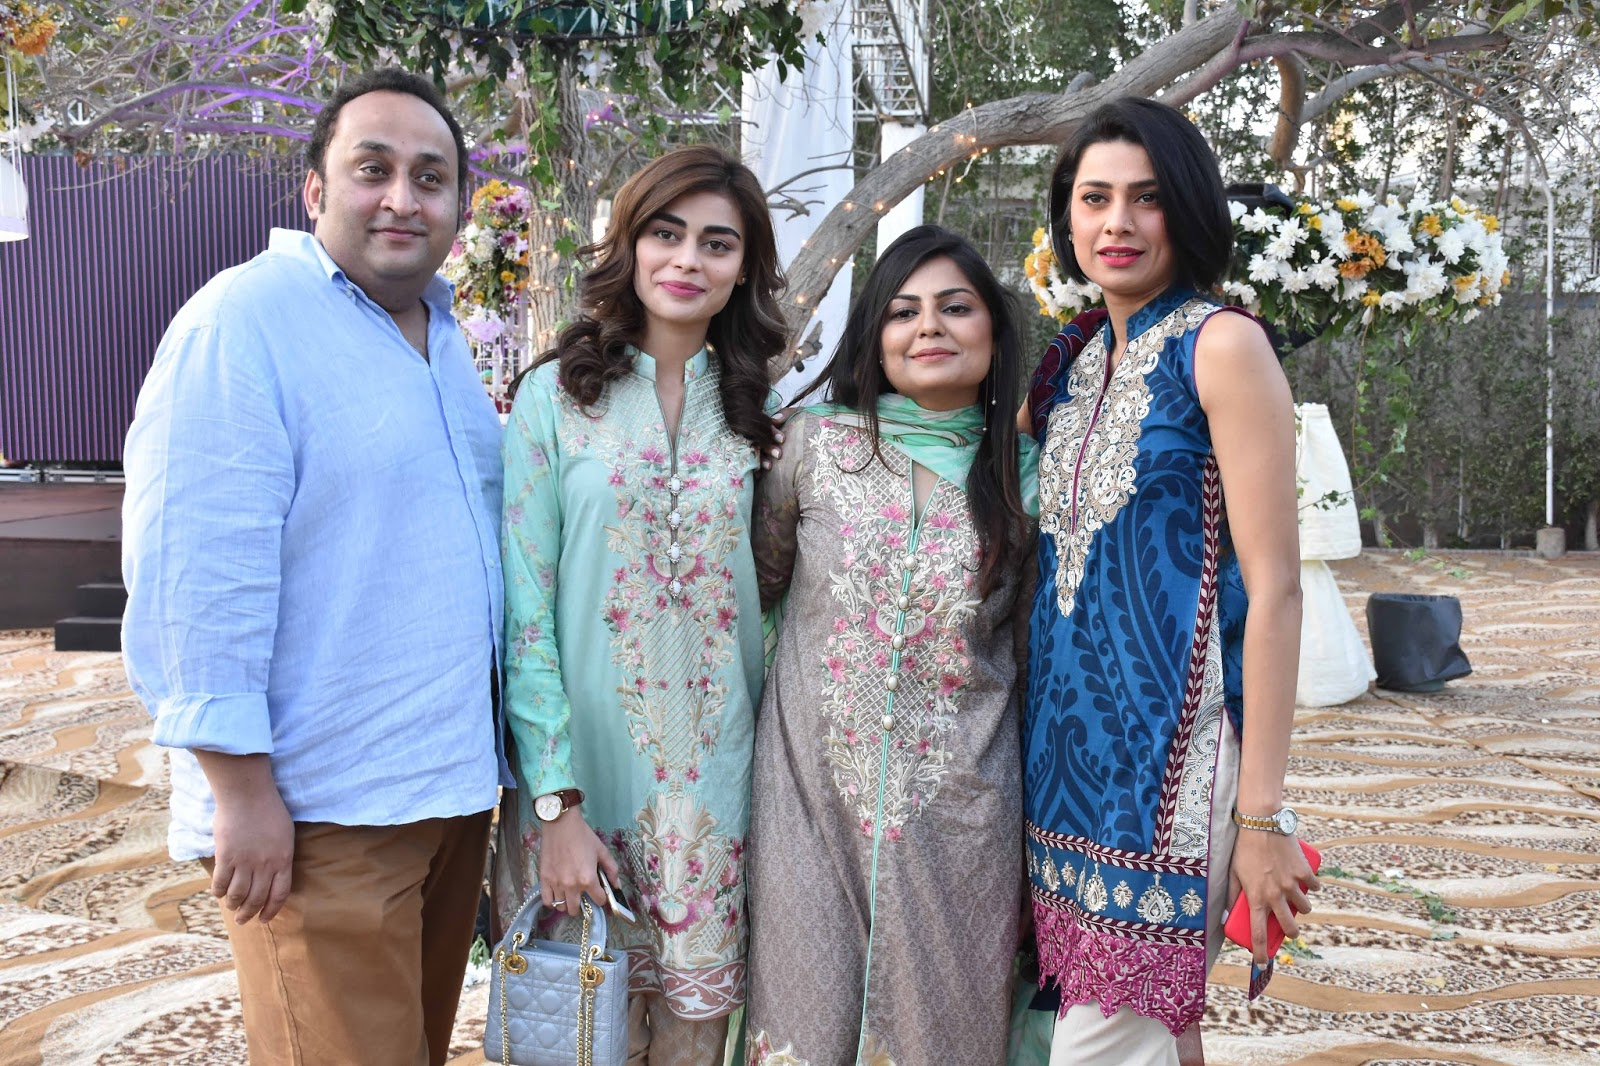 lhv imagesi |Press Release|: Zainab Chottani by LSM unveils S/S' 16 Collection